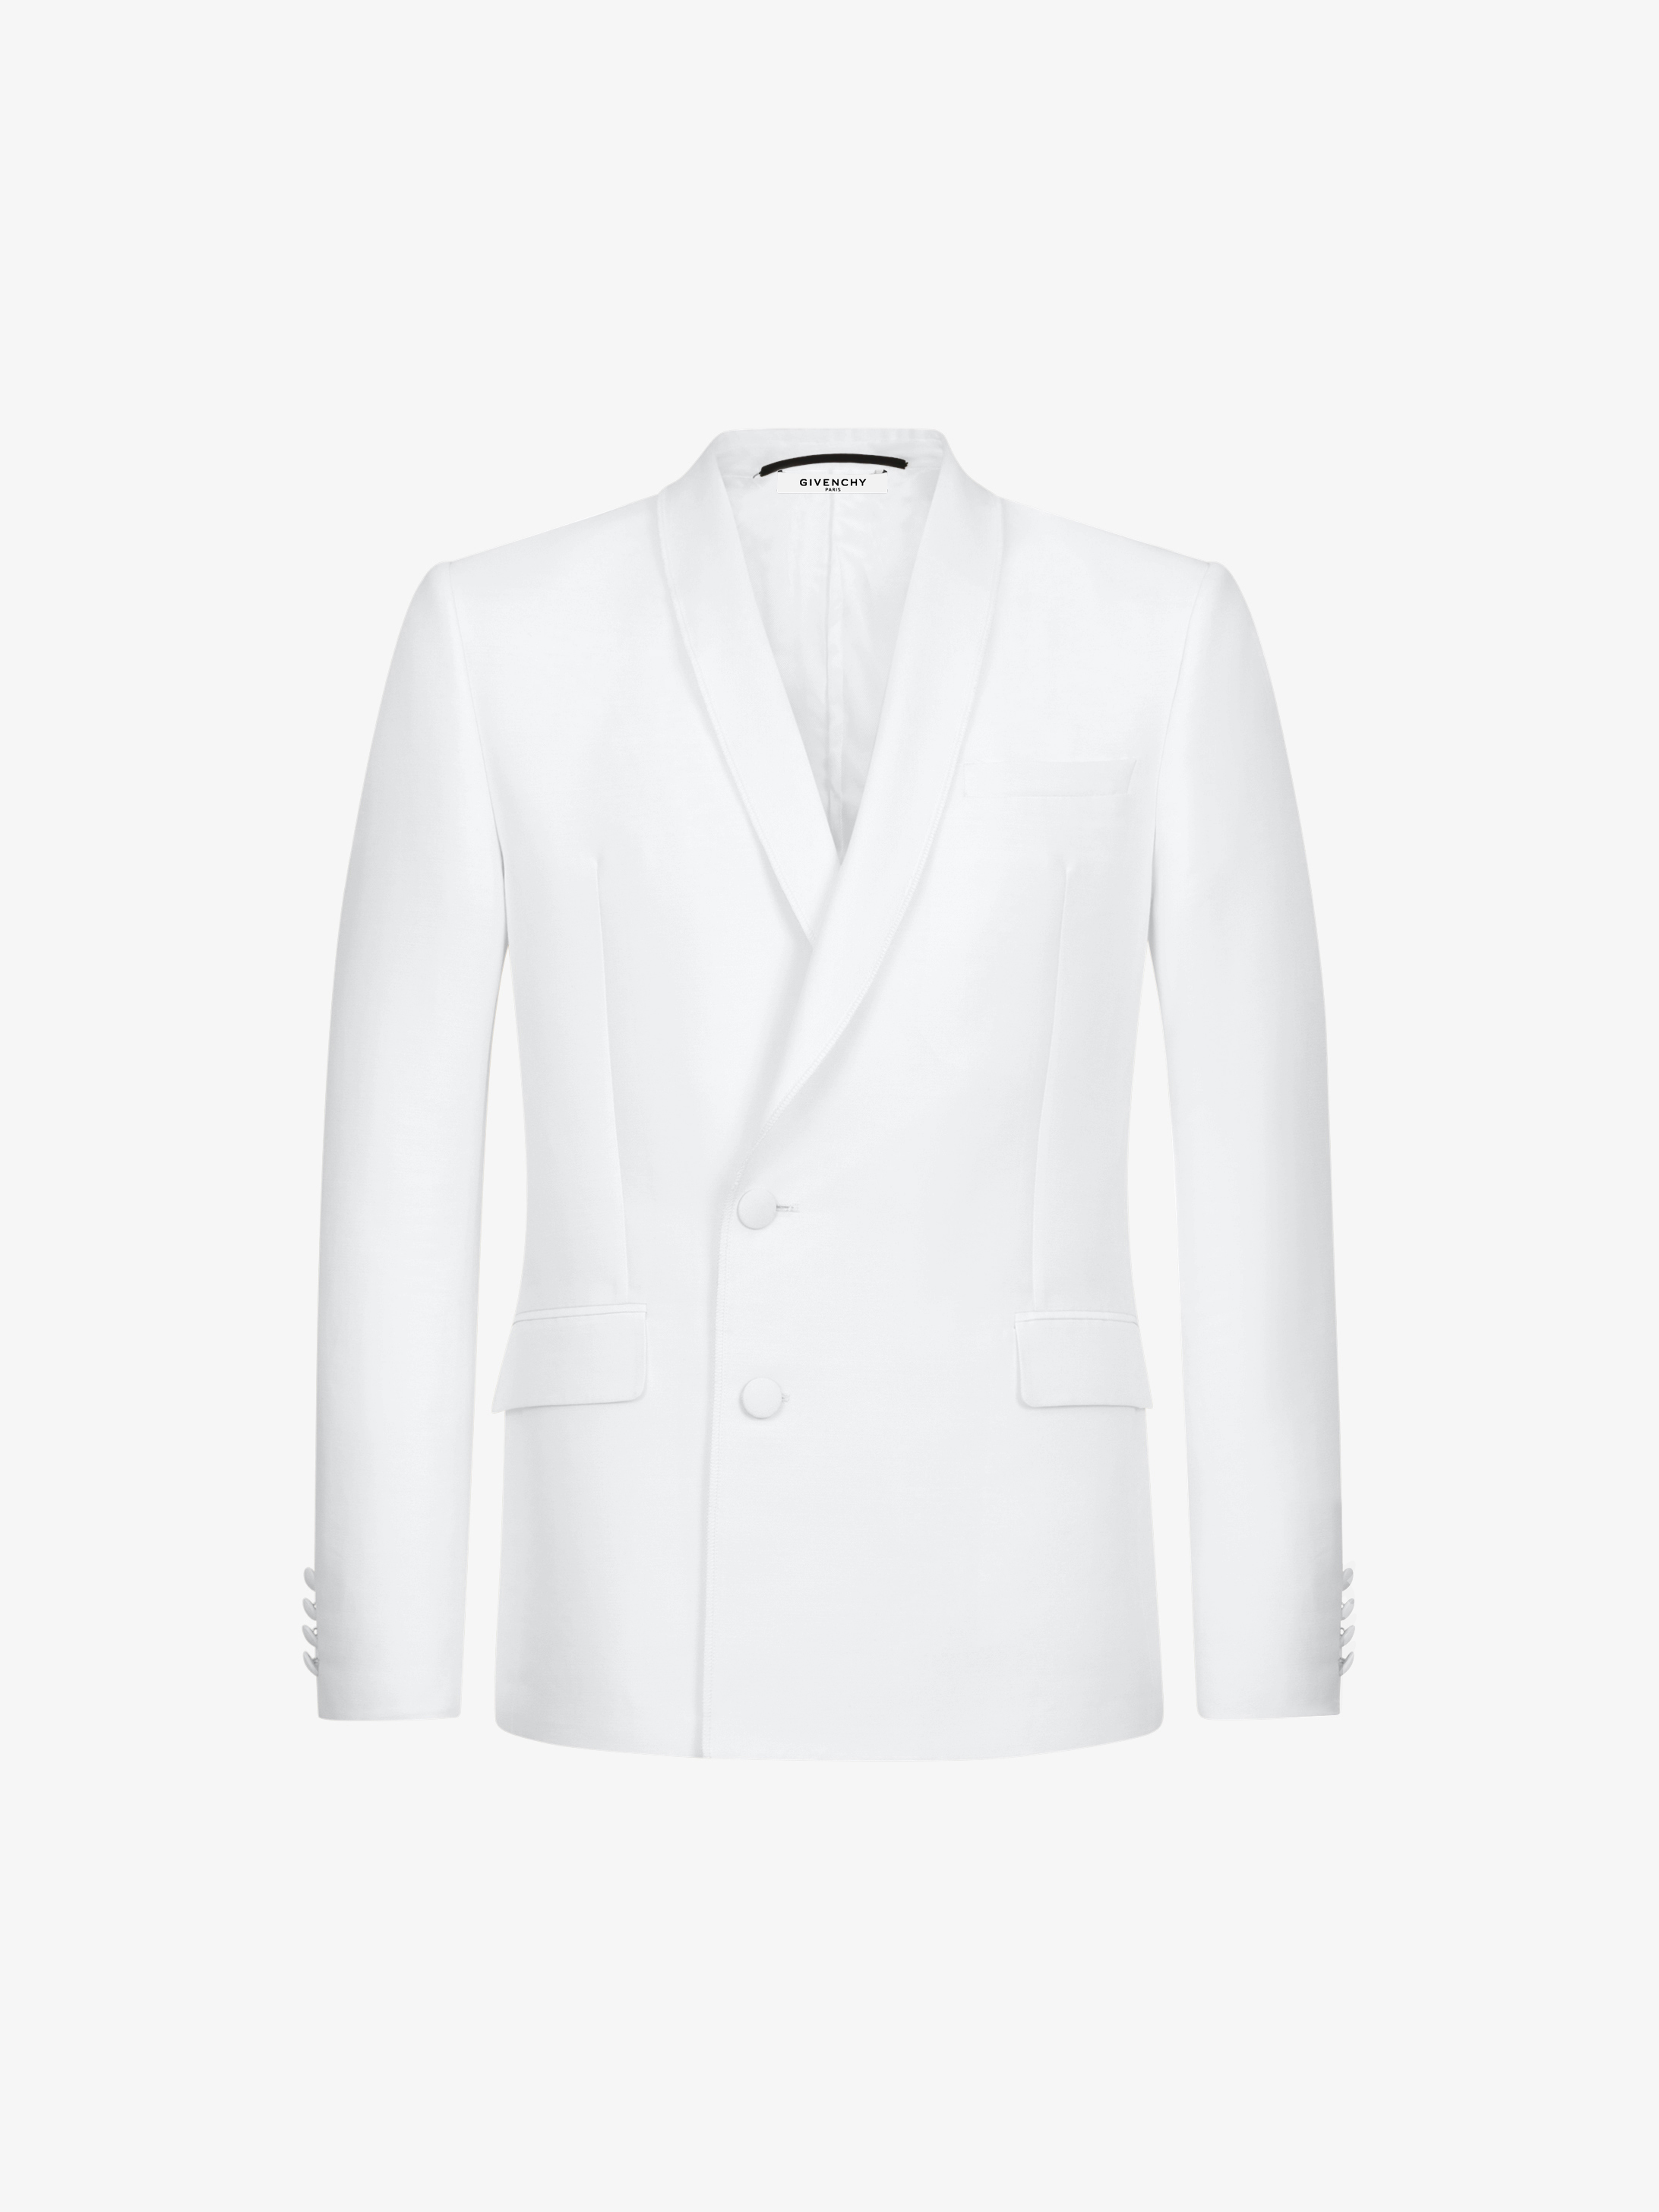 Shawl collar jacket in cotton and wool